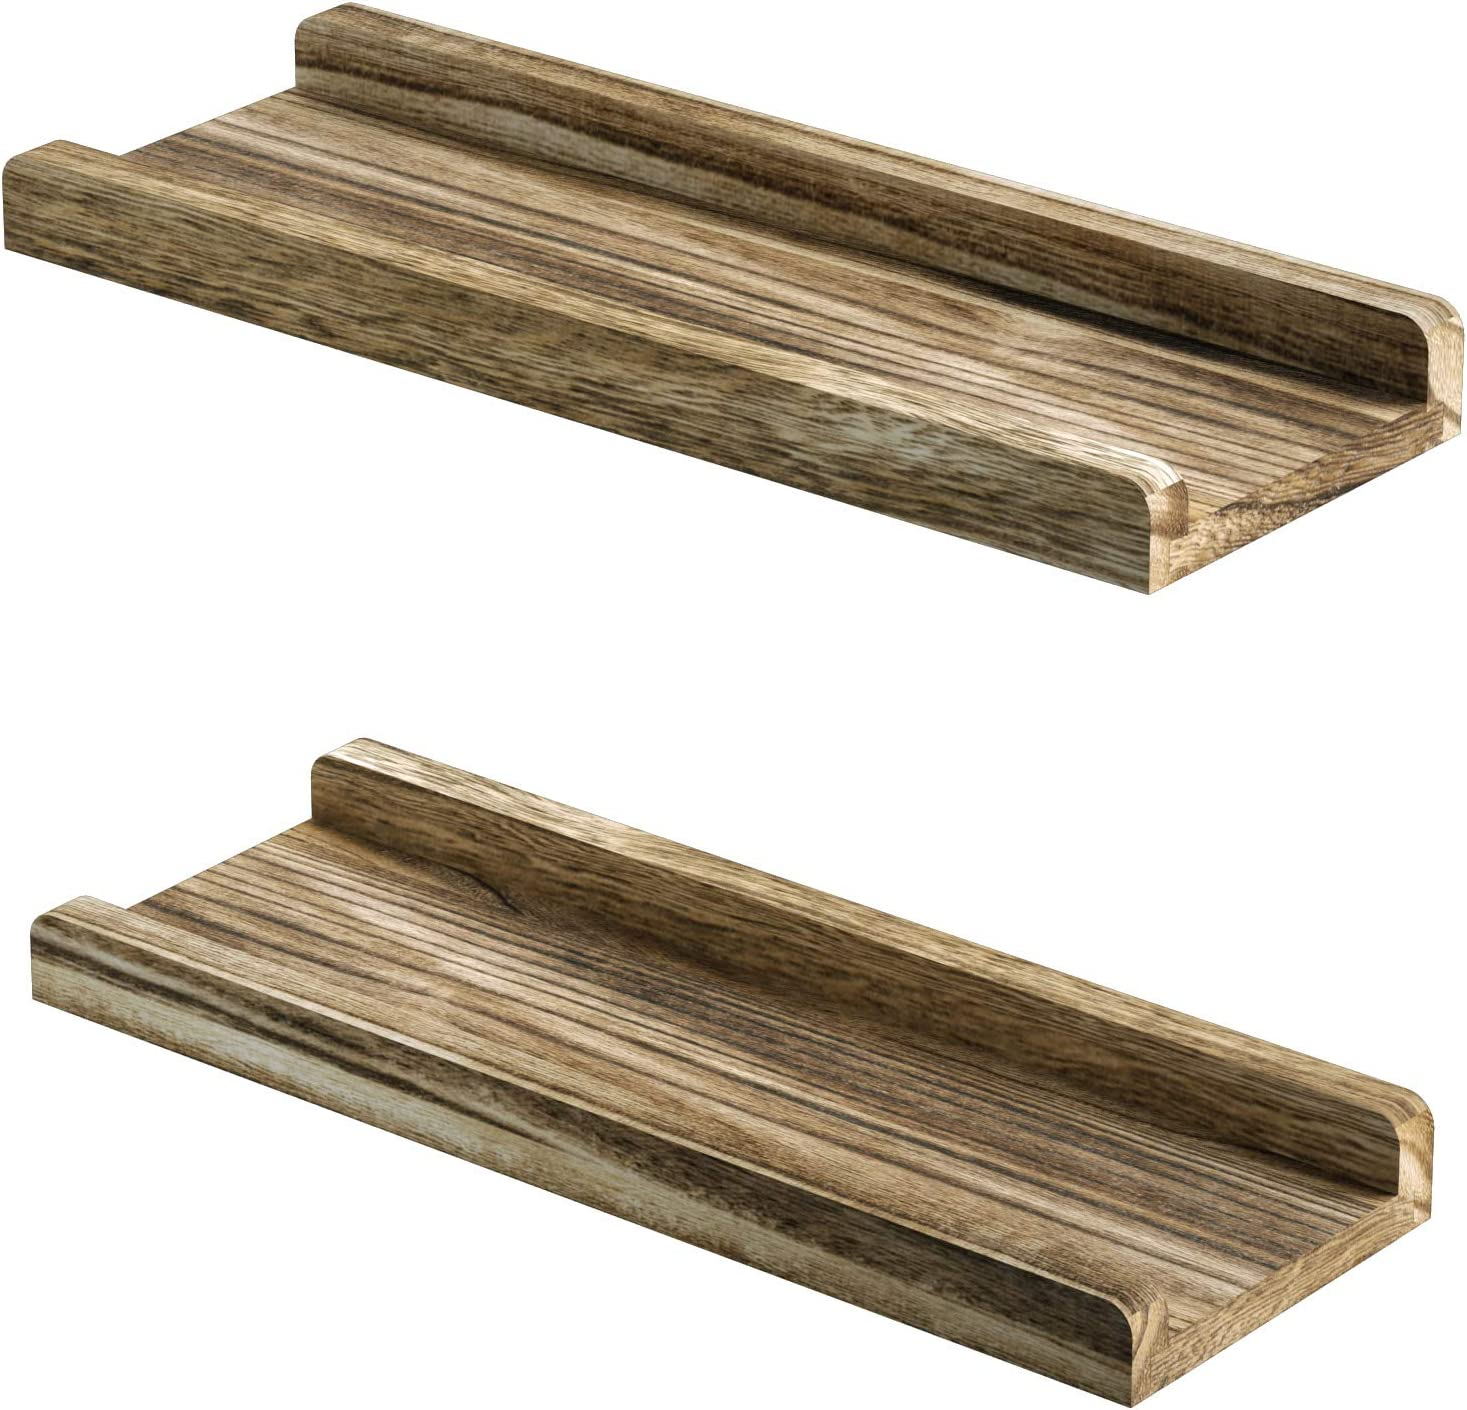 Love-KANKEI Floating Shelves Wall Mounted Set of 2 Rustic Wood Wall Shelves for Bedroom Living Room Bathroom Kitchen Office and More Carbonized Black